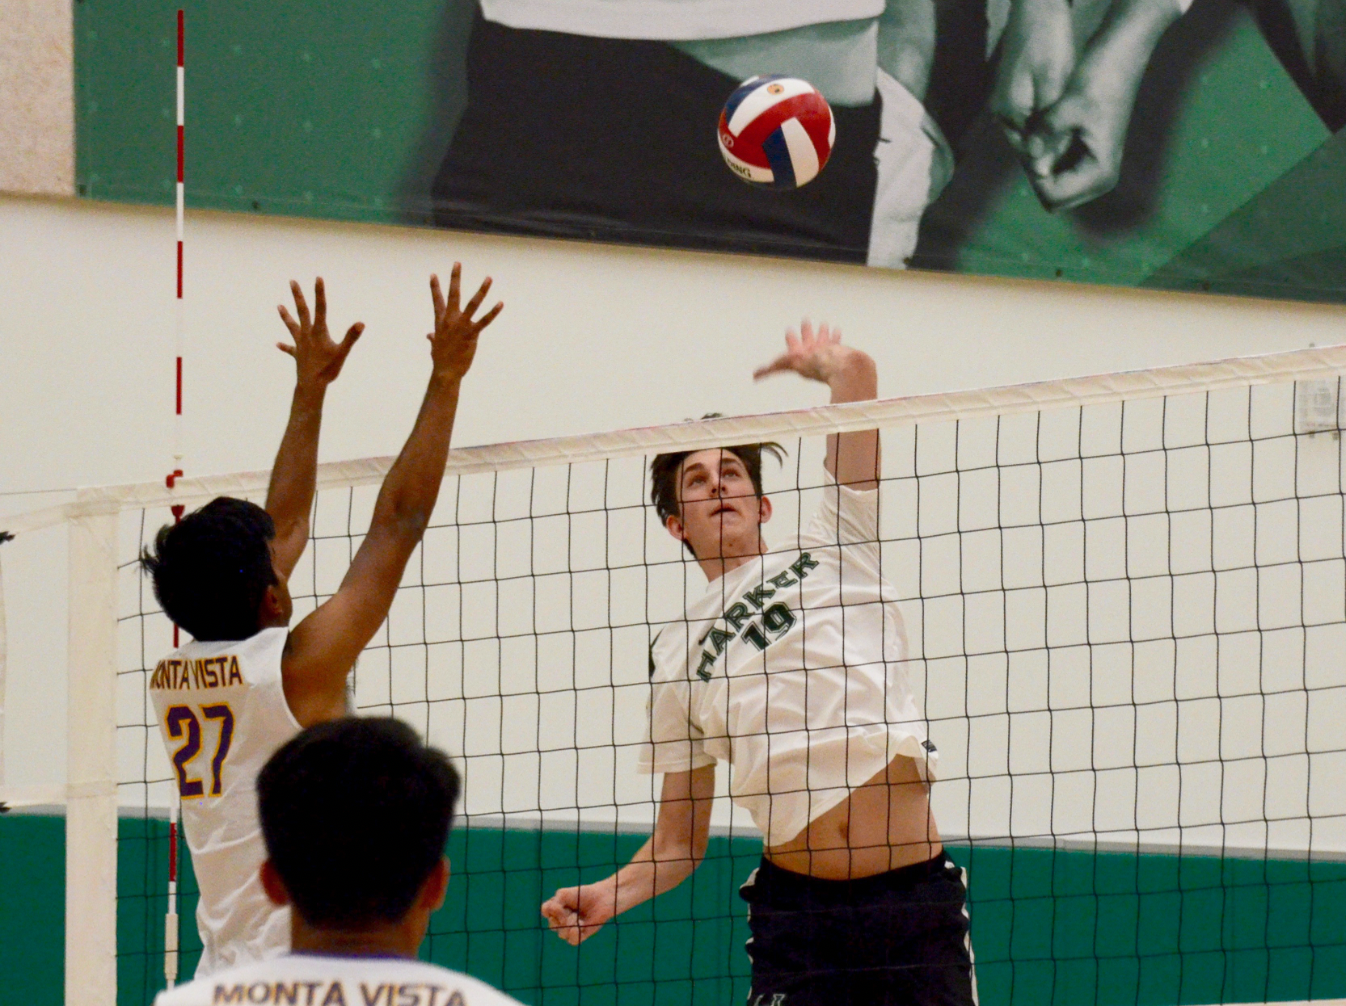 Senior+Jared+Anderson+jumps+to+hit+the+ball+during+the+varsity+volleyball+team%E2%80%99s+game+against+rival+Monta+Vista+High+School+on+Friday.+